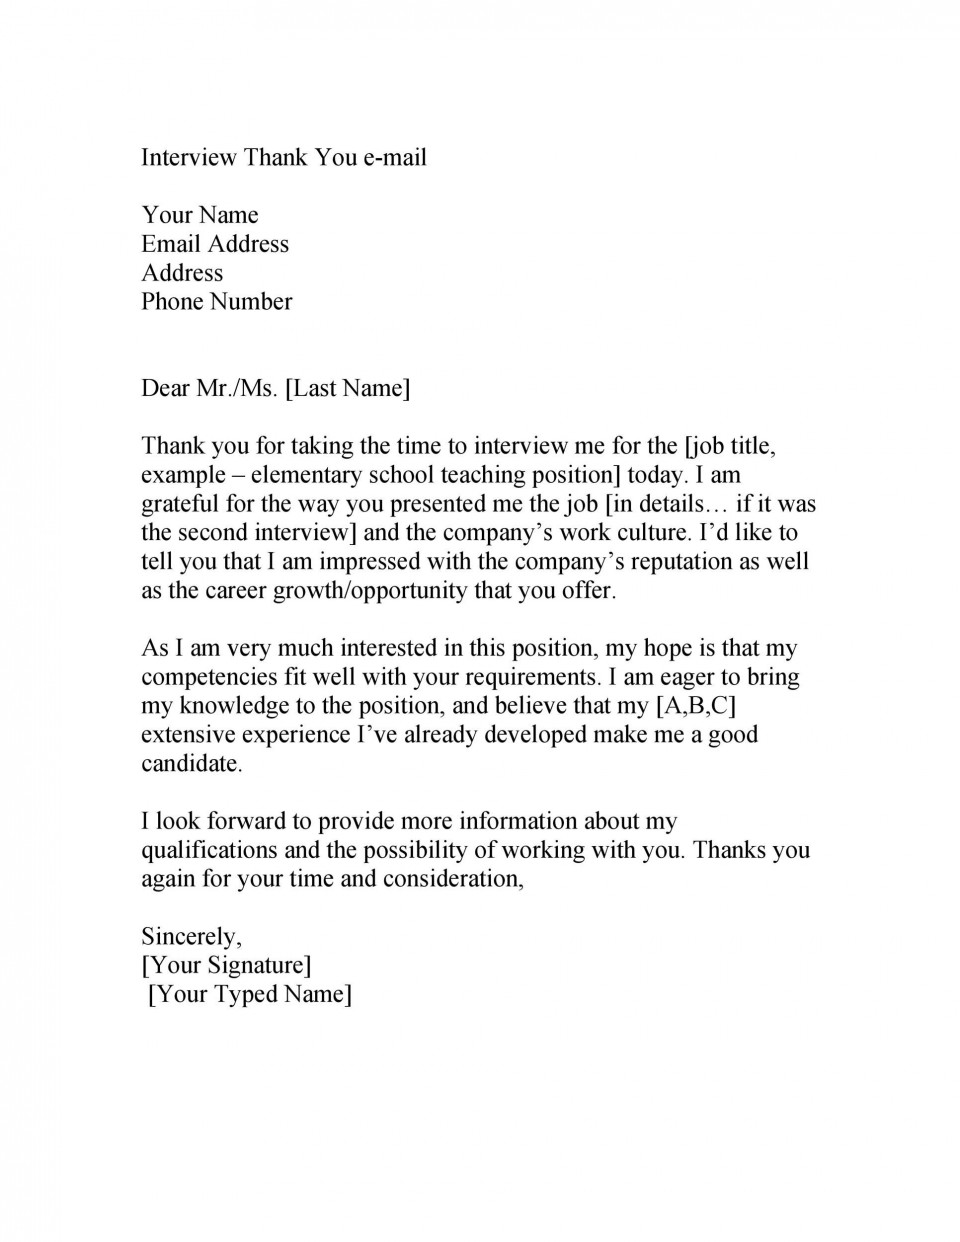 006 Formidable Thank You Note Template For Interview High Resolution  Card Example After Letter Job960